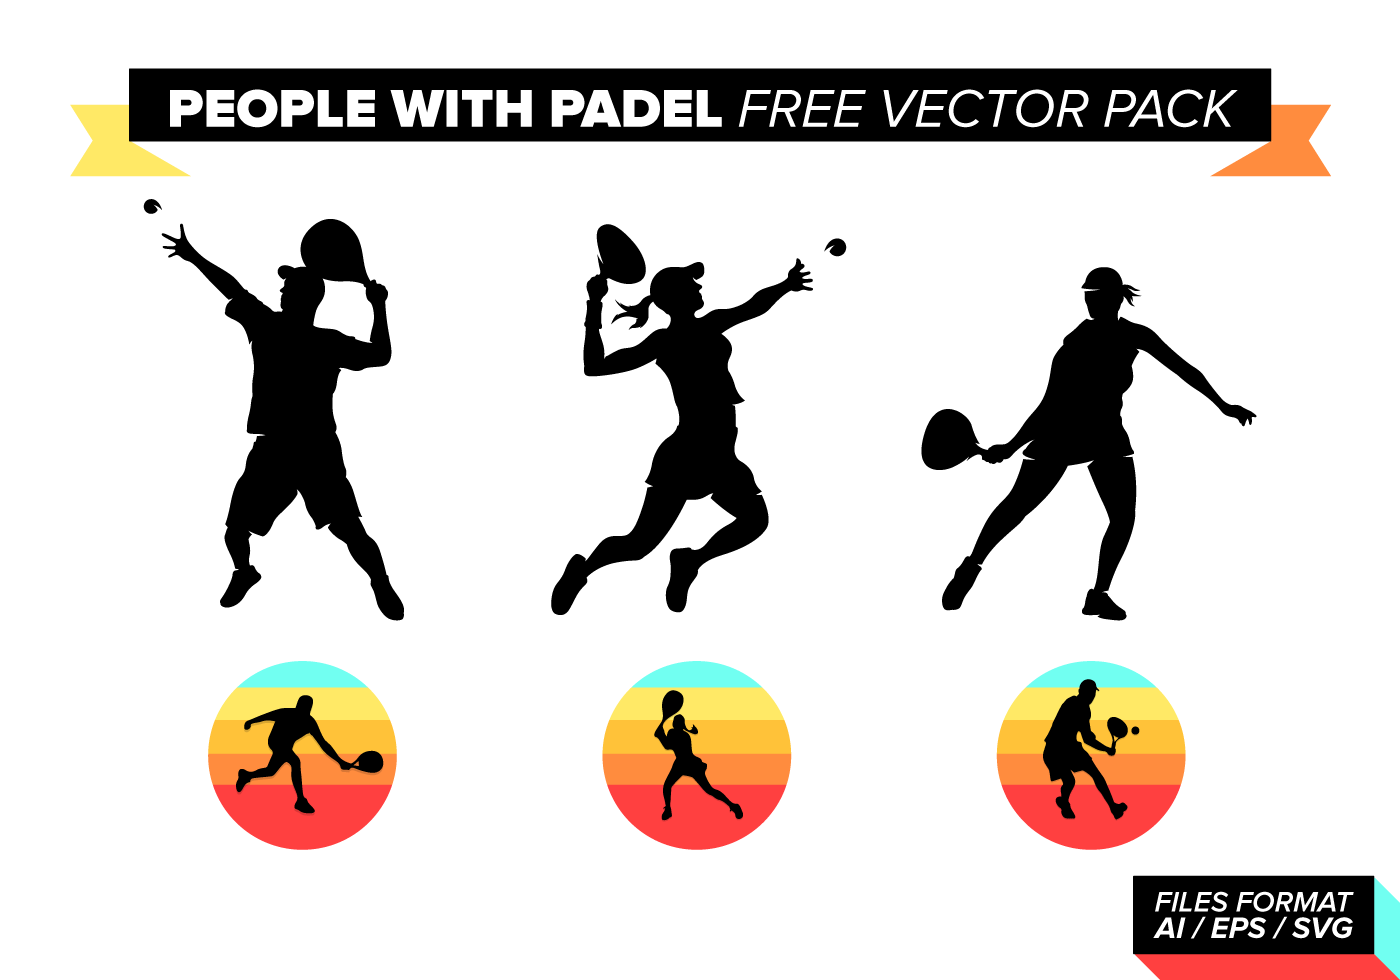 people with padel free vector pack download free vector tennis racquet clip art tennis racket clipart png